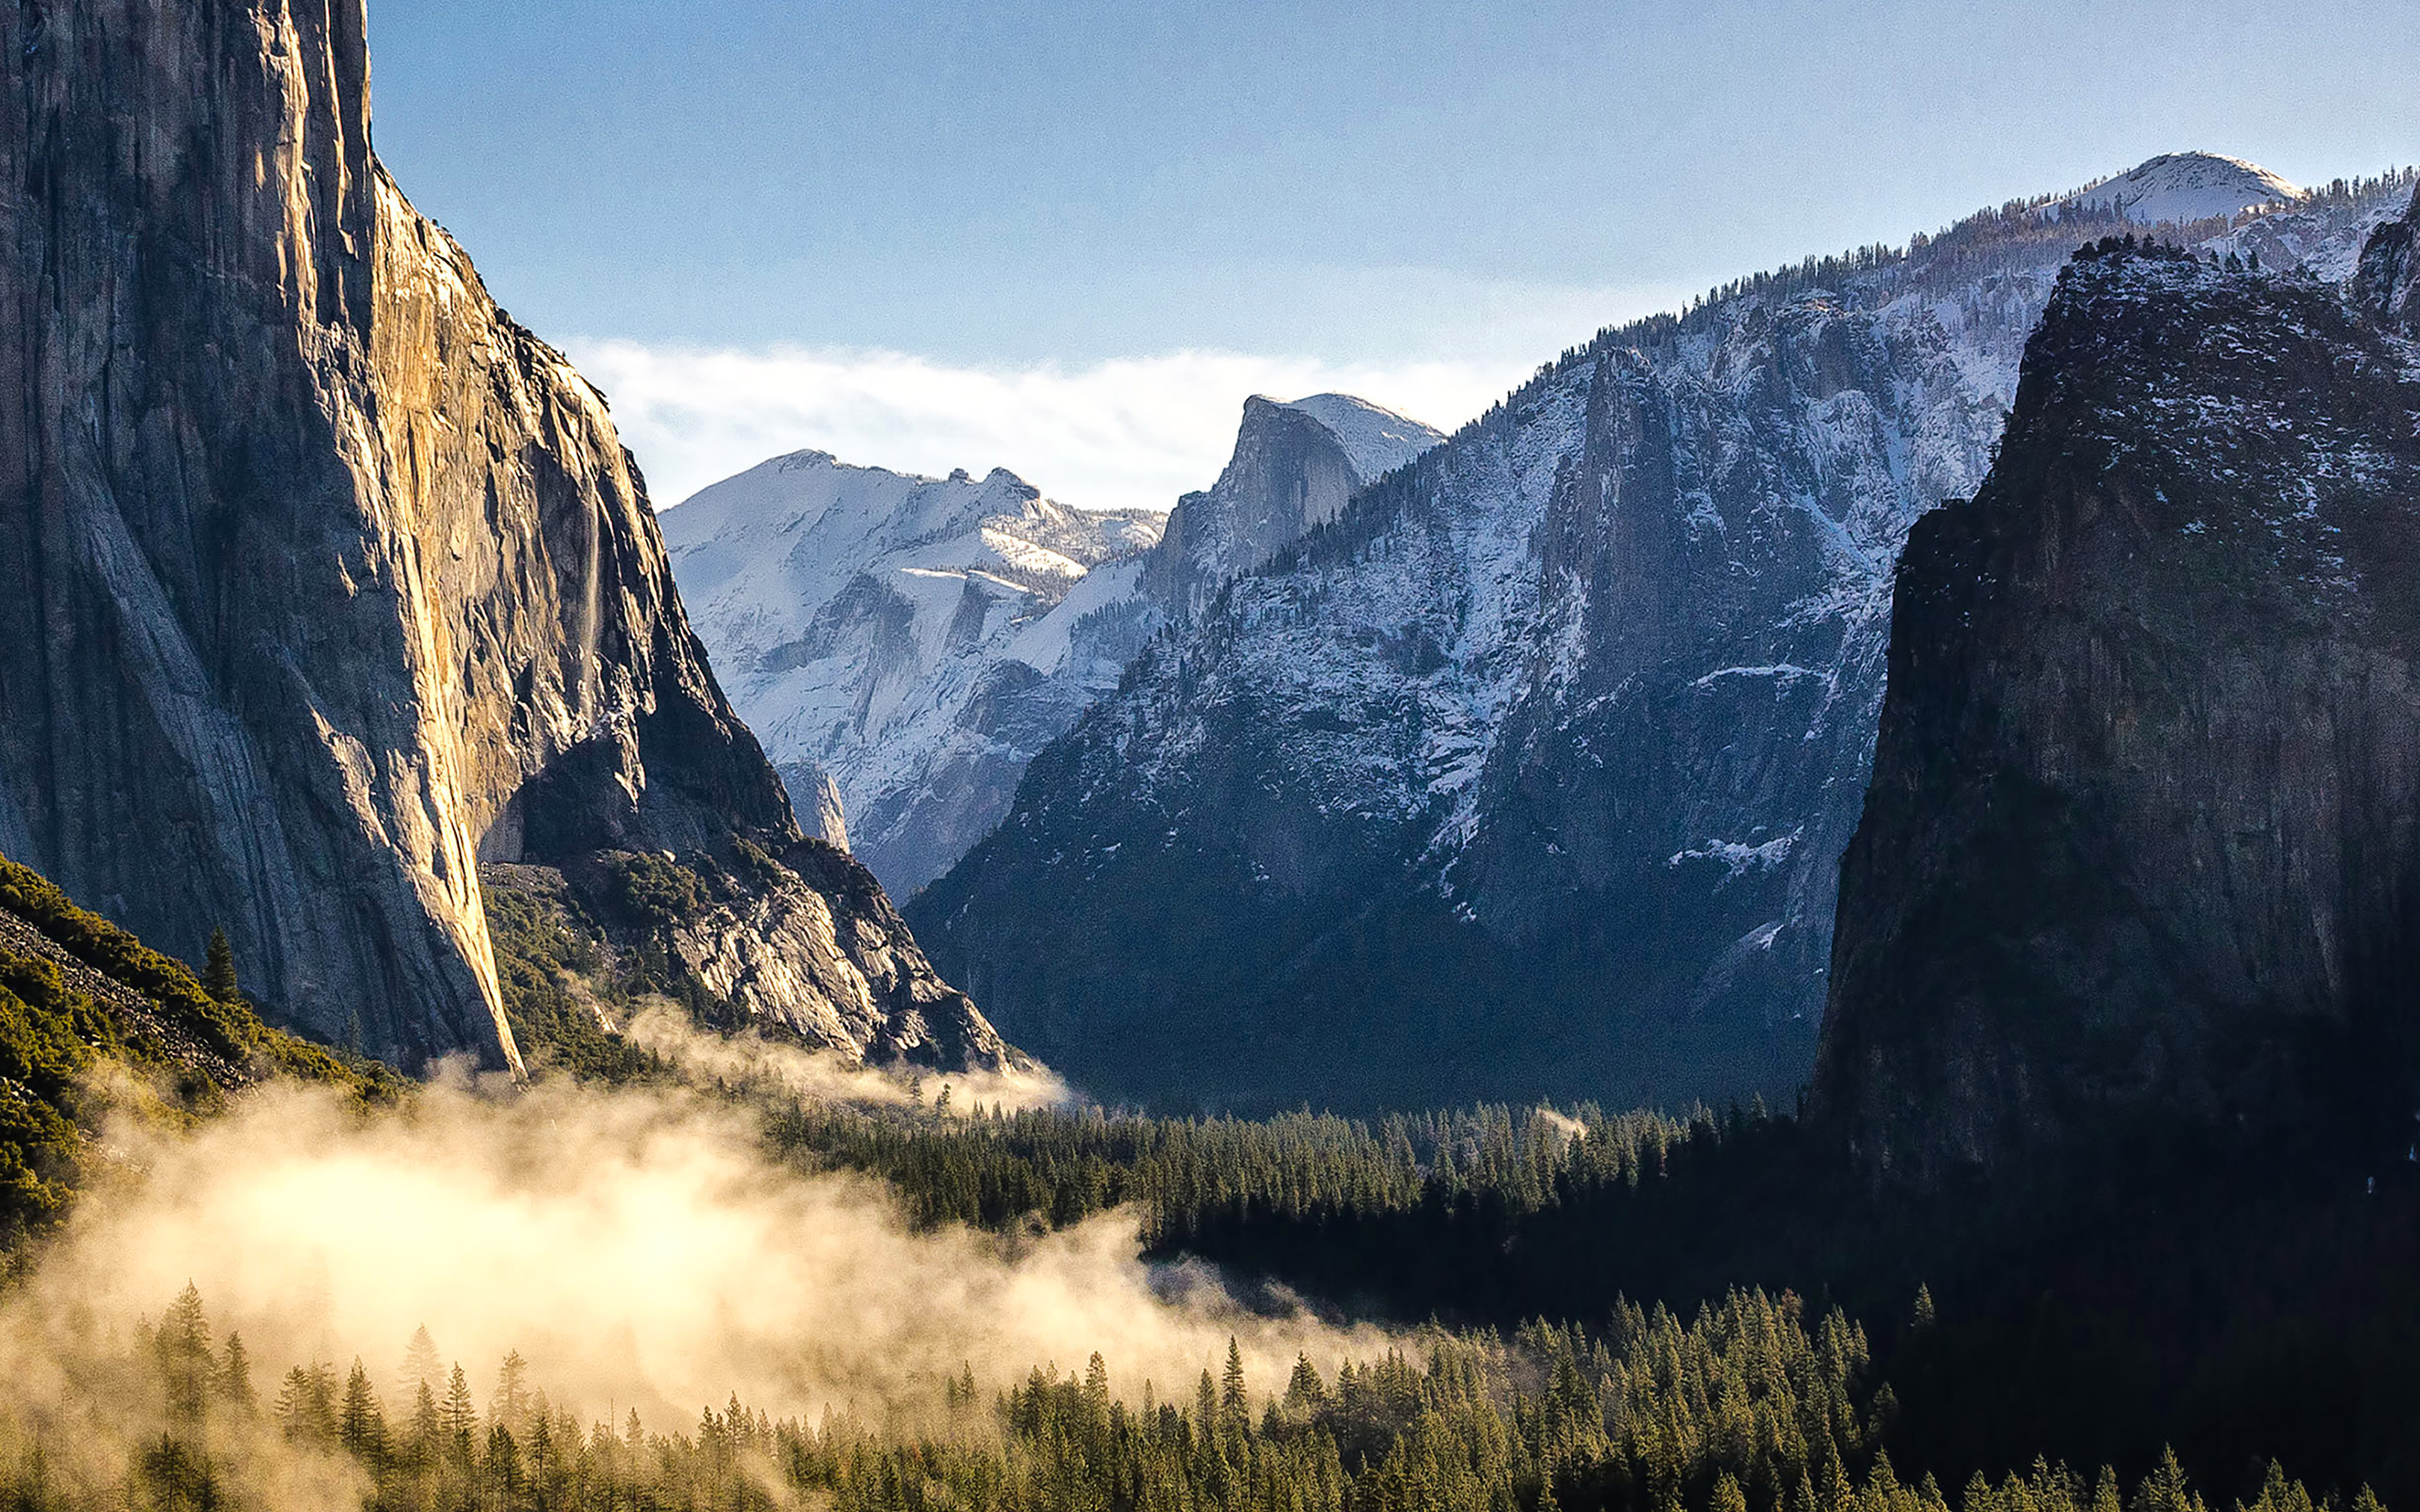 Md41 wallpaper yosemite mountain nature wallpaper - Desktop wallpaper 4k ...